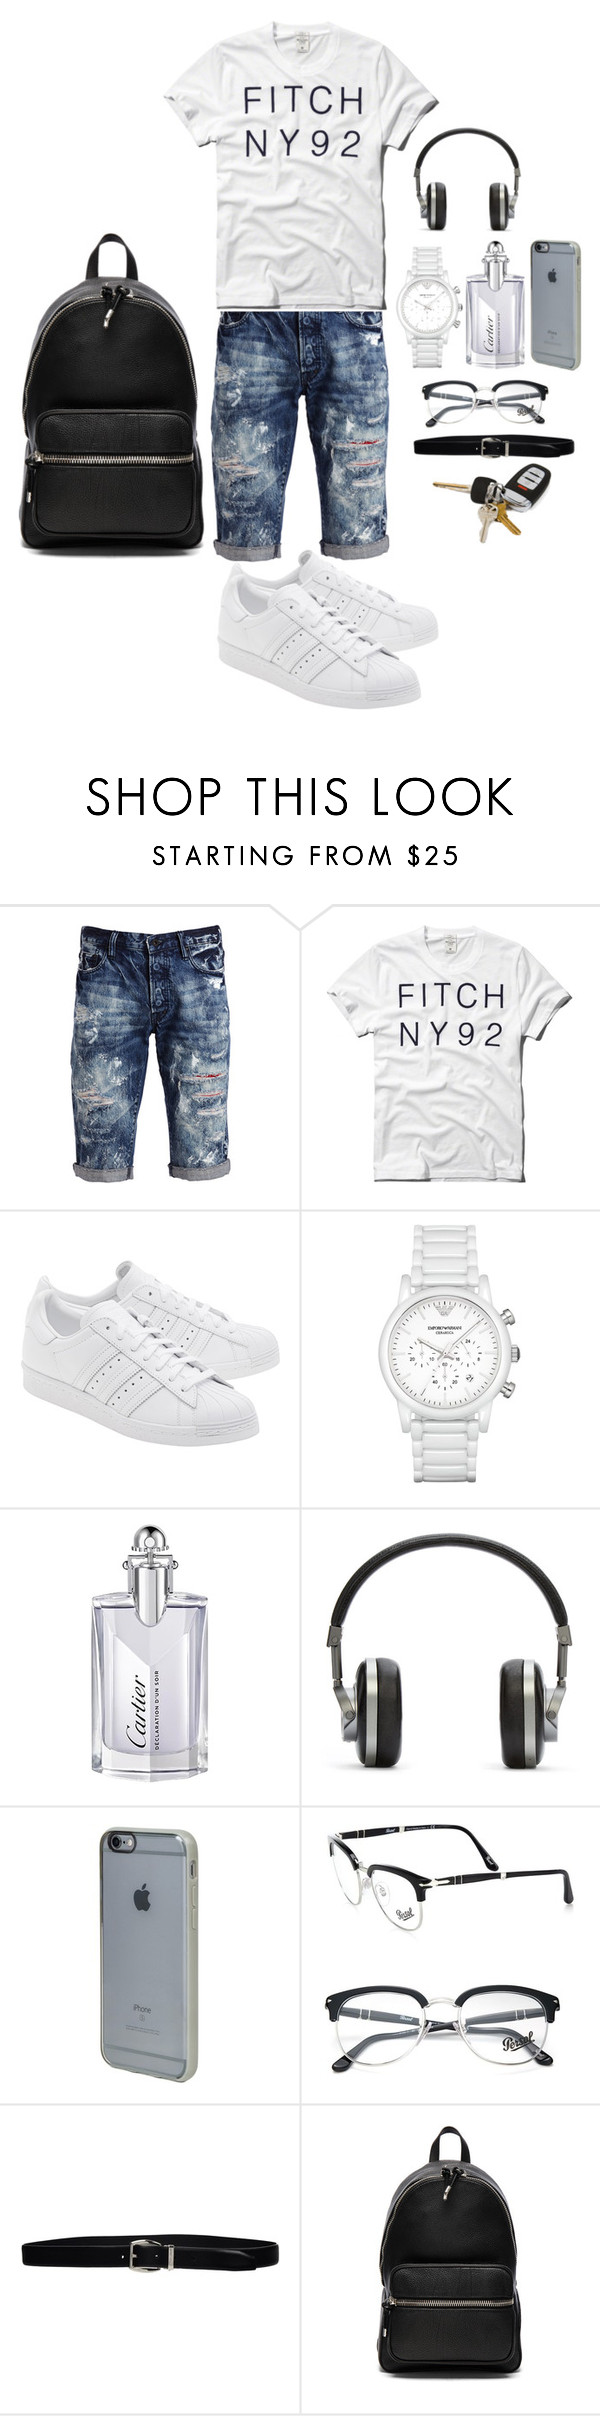 """Untitled #2371"" by mrkr-lawson ❤ liked on Polyvore featuring PRPS, Abercrombie & Fitch, adidas Originals, Emporio Armani, Cartier, Master & Dynamic, Incase, Persol, Giorgio Armani and Alexander Wang"